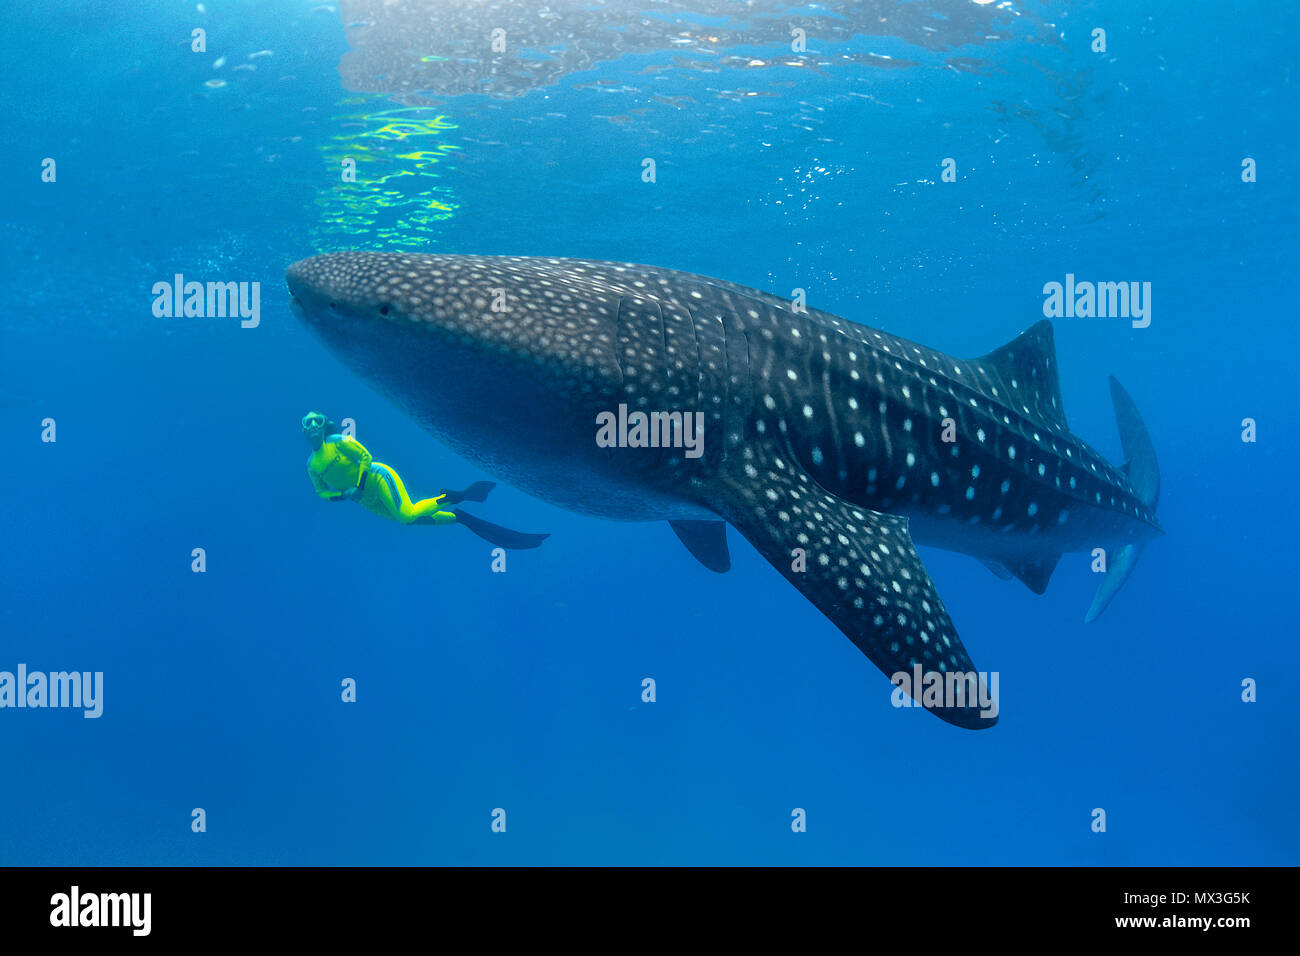 Size comparison, snorkeller and Whale shark (Rhincodon typus), biggest fish of world, Ari Atoll, Maldives islands, Asia - Stock Image